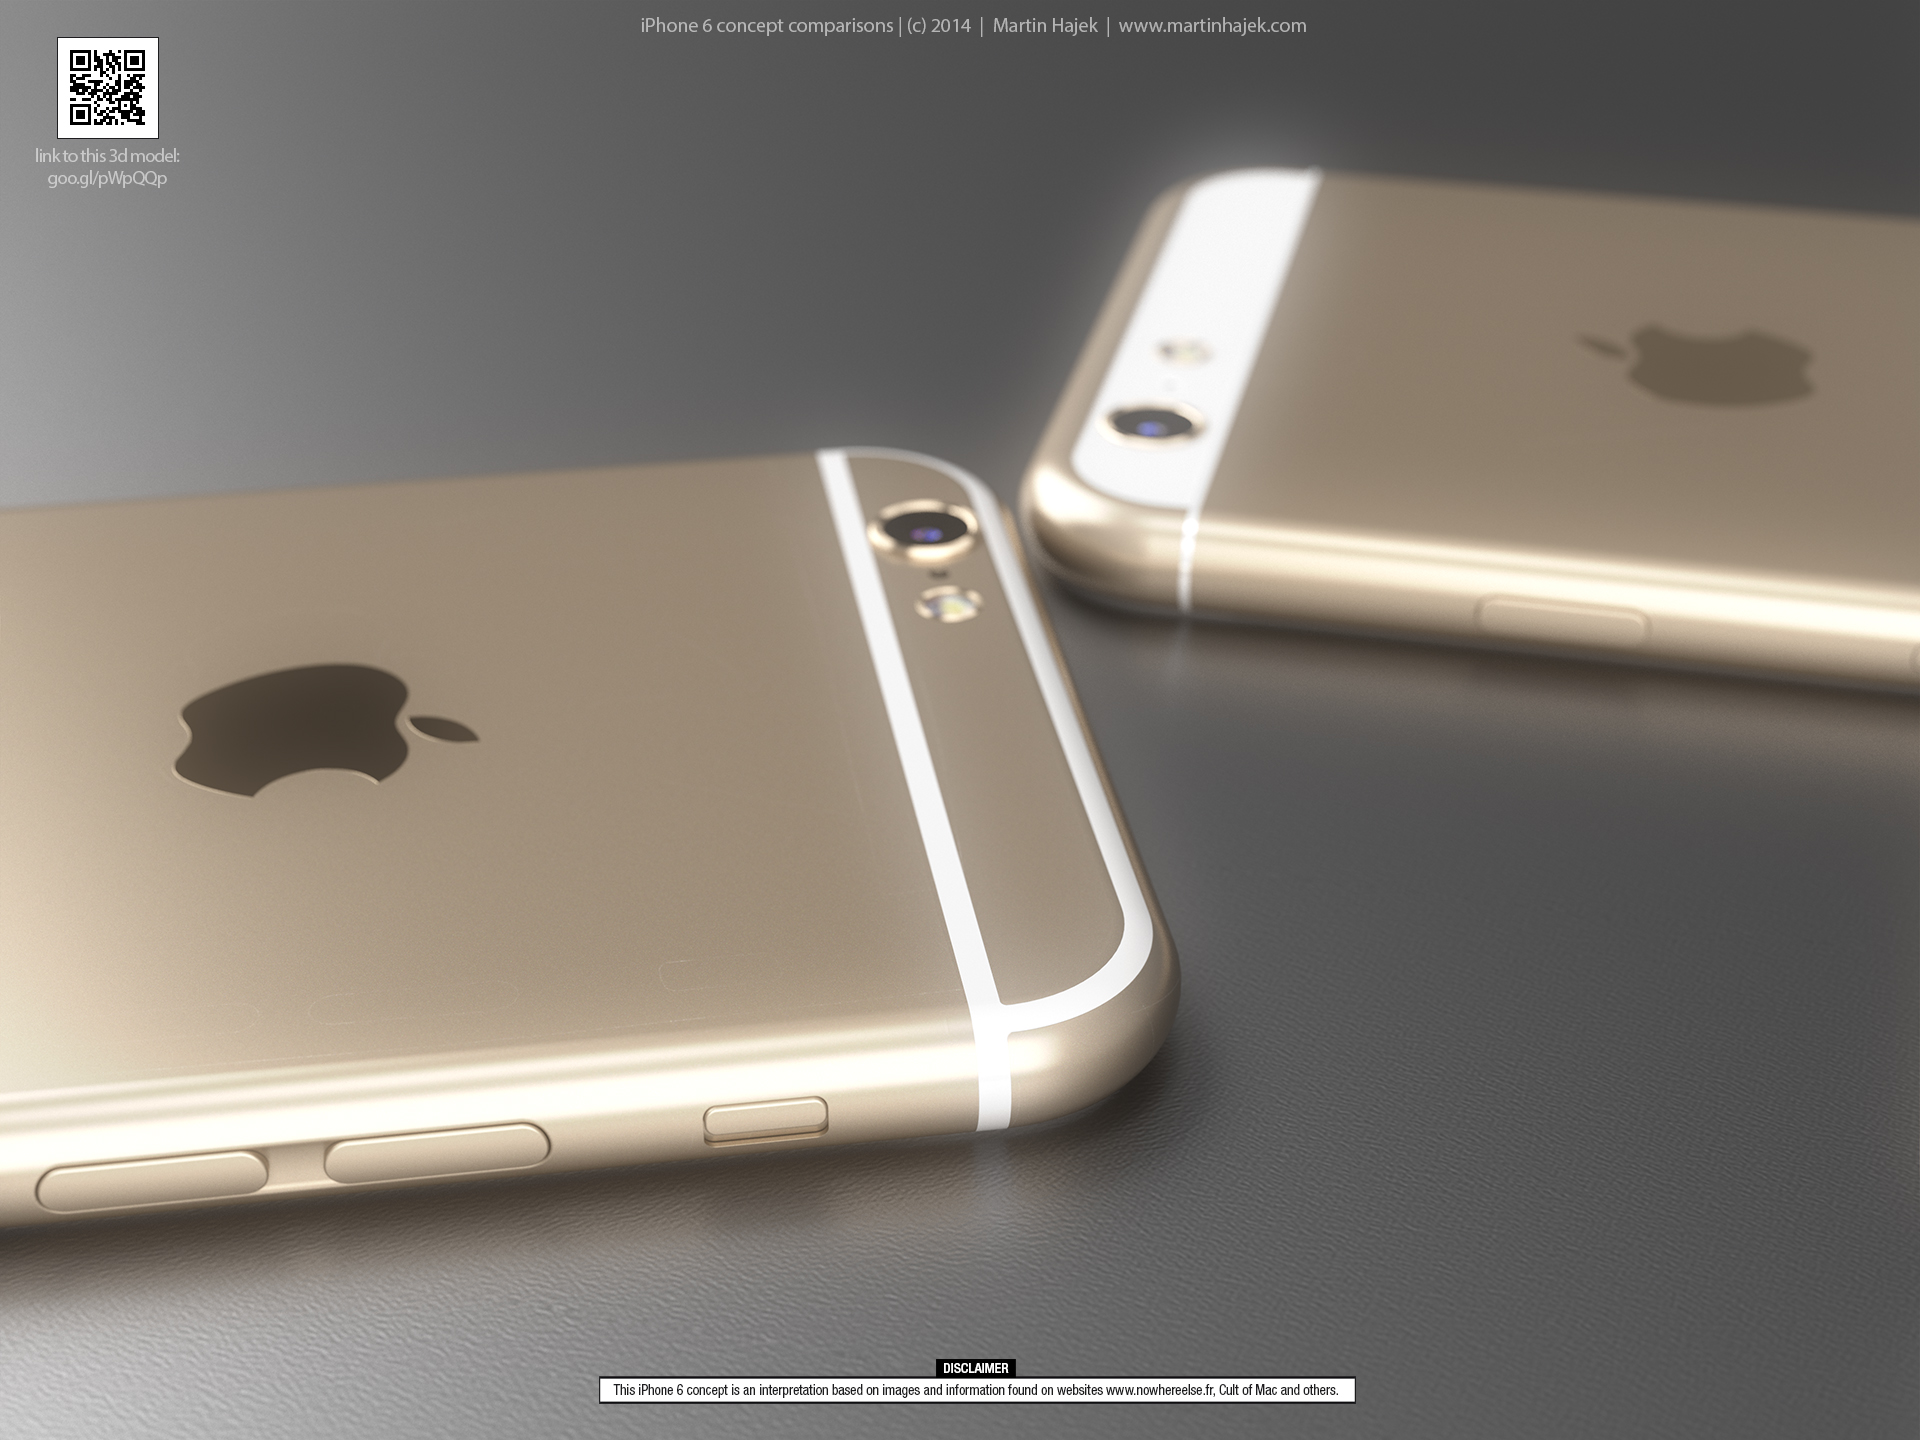 iPhone 6 concept comparison